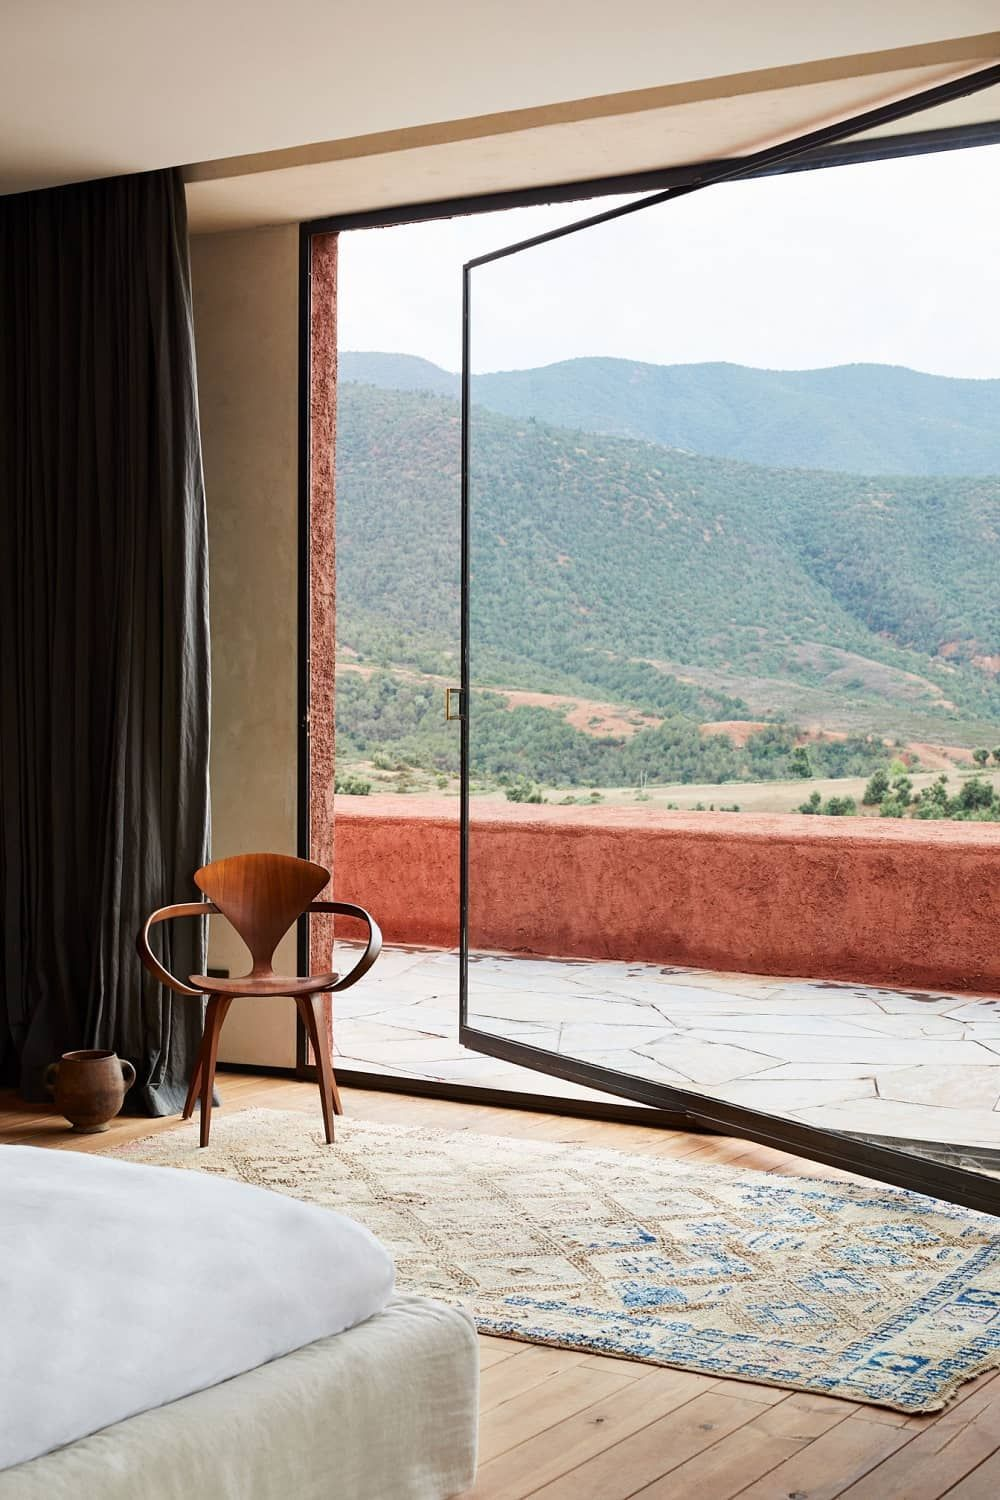 Moroccan Villa Designed by French Studio KO – Design. / Visual.